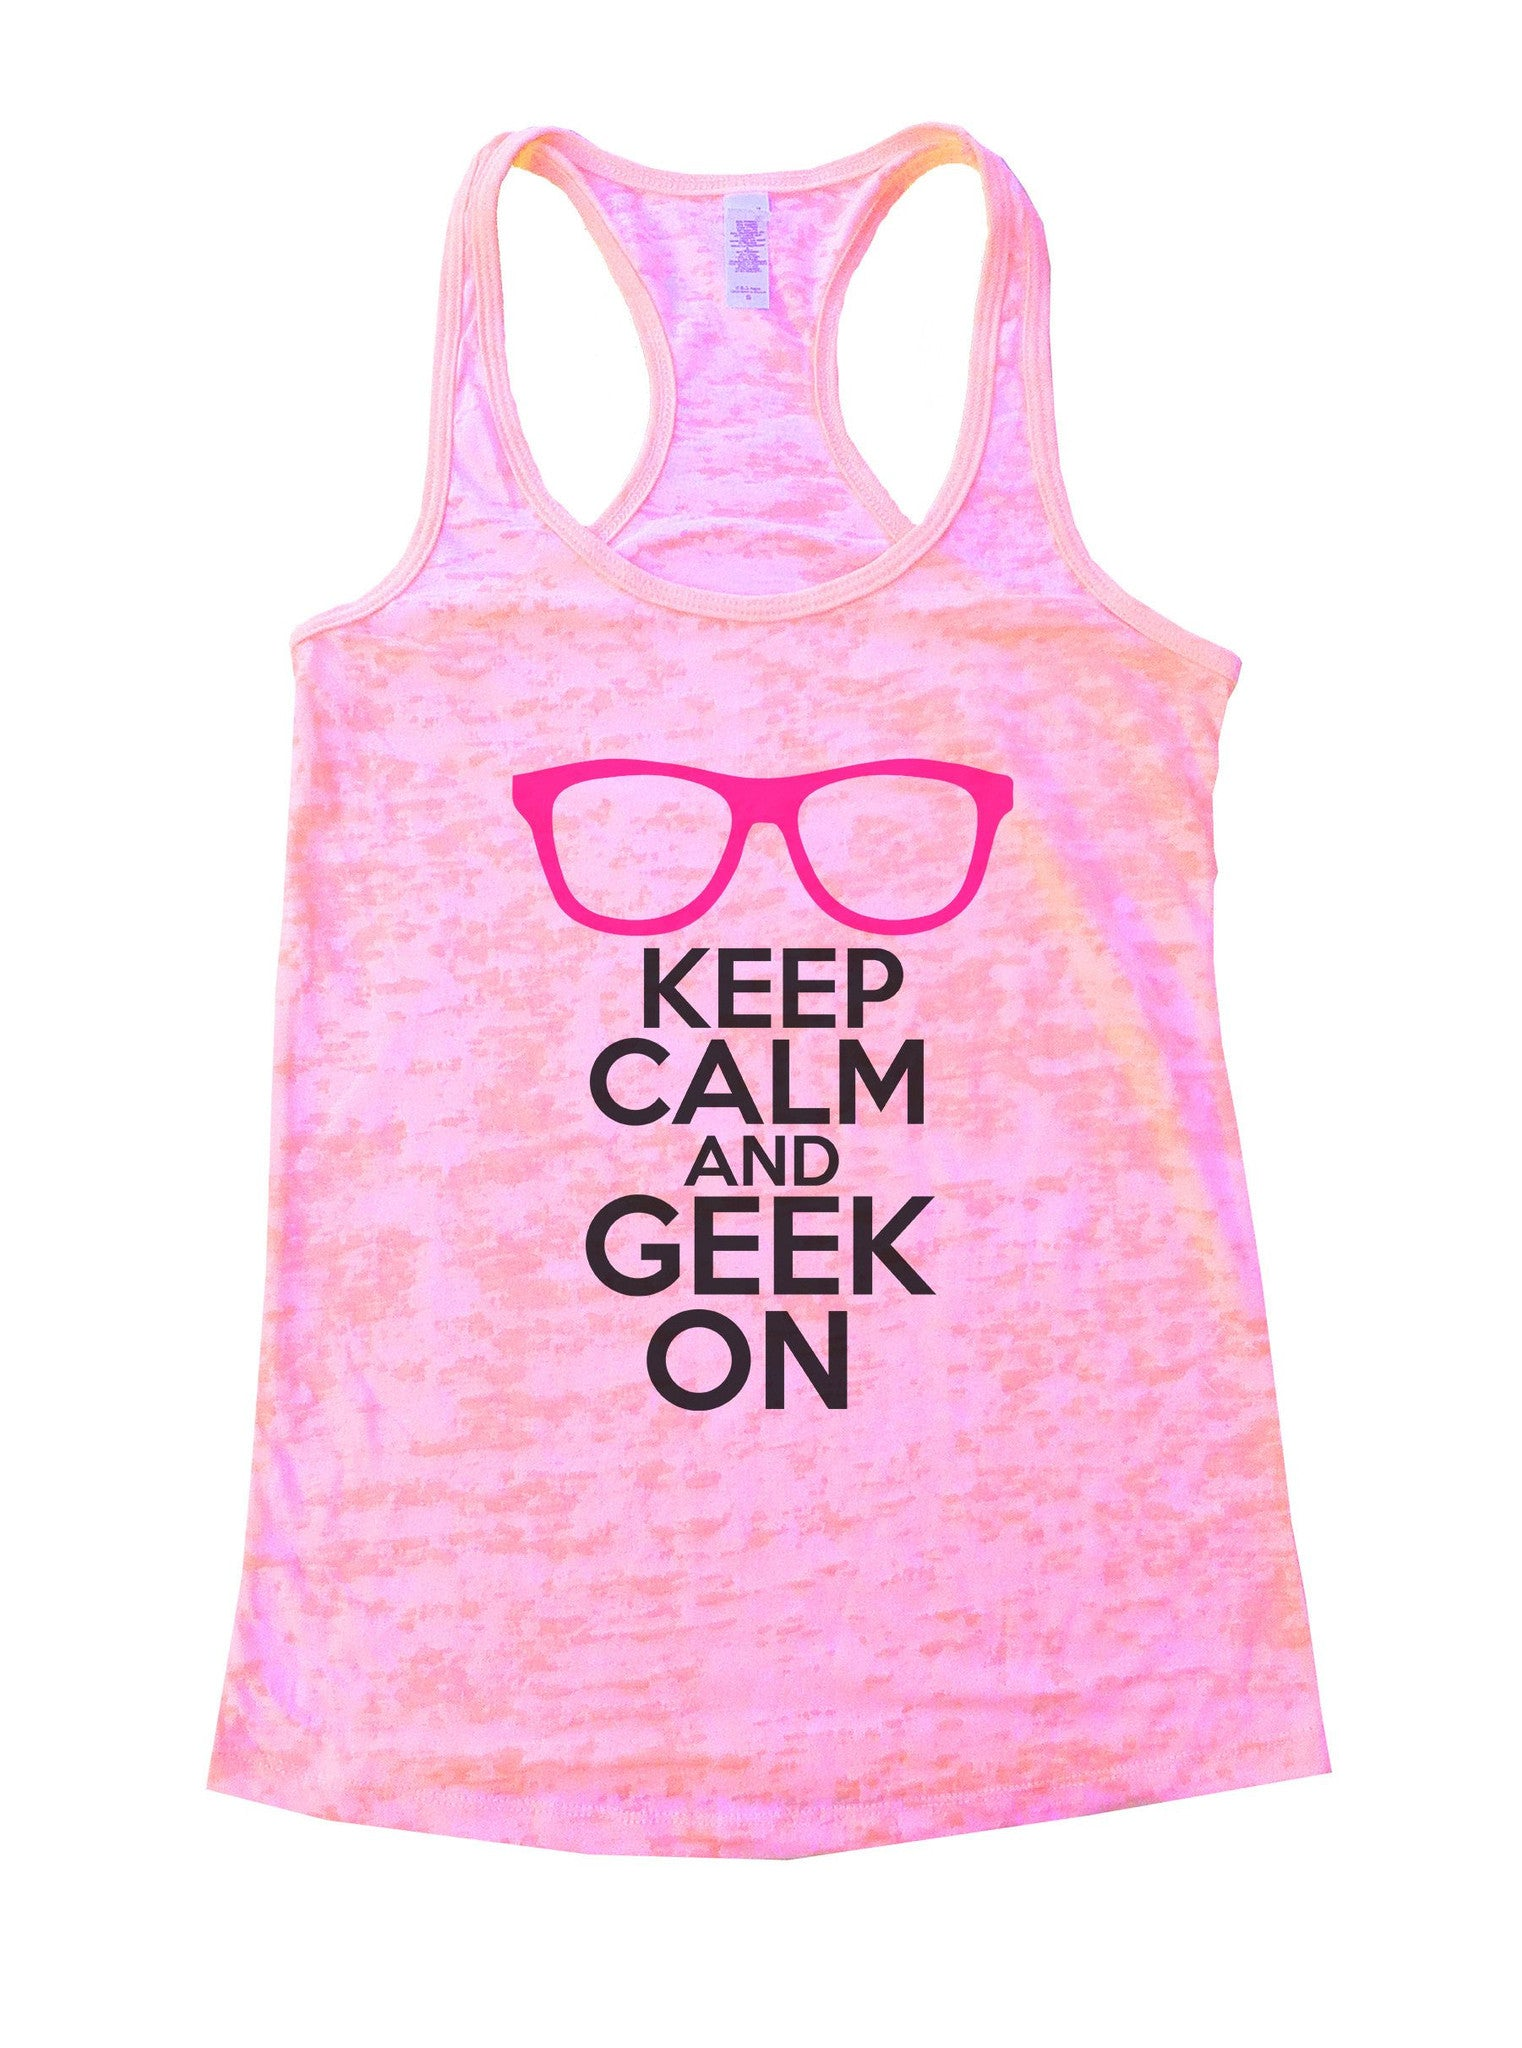 Keep Calm And Geek On Burnout Tank Top By BurnoutTankTops.com - 1121 - Funny Shirts Tank Tops Burnouts and Triblends  - 3